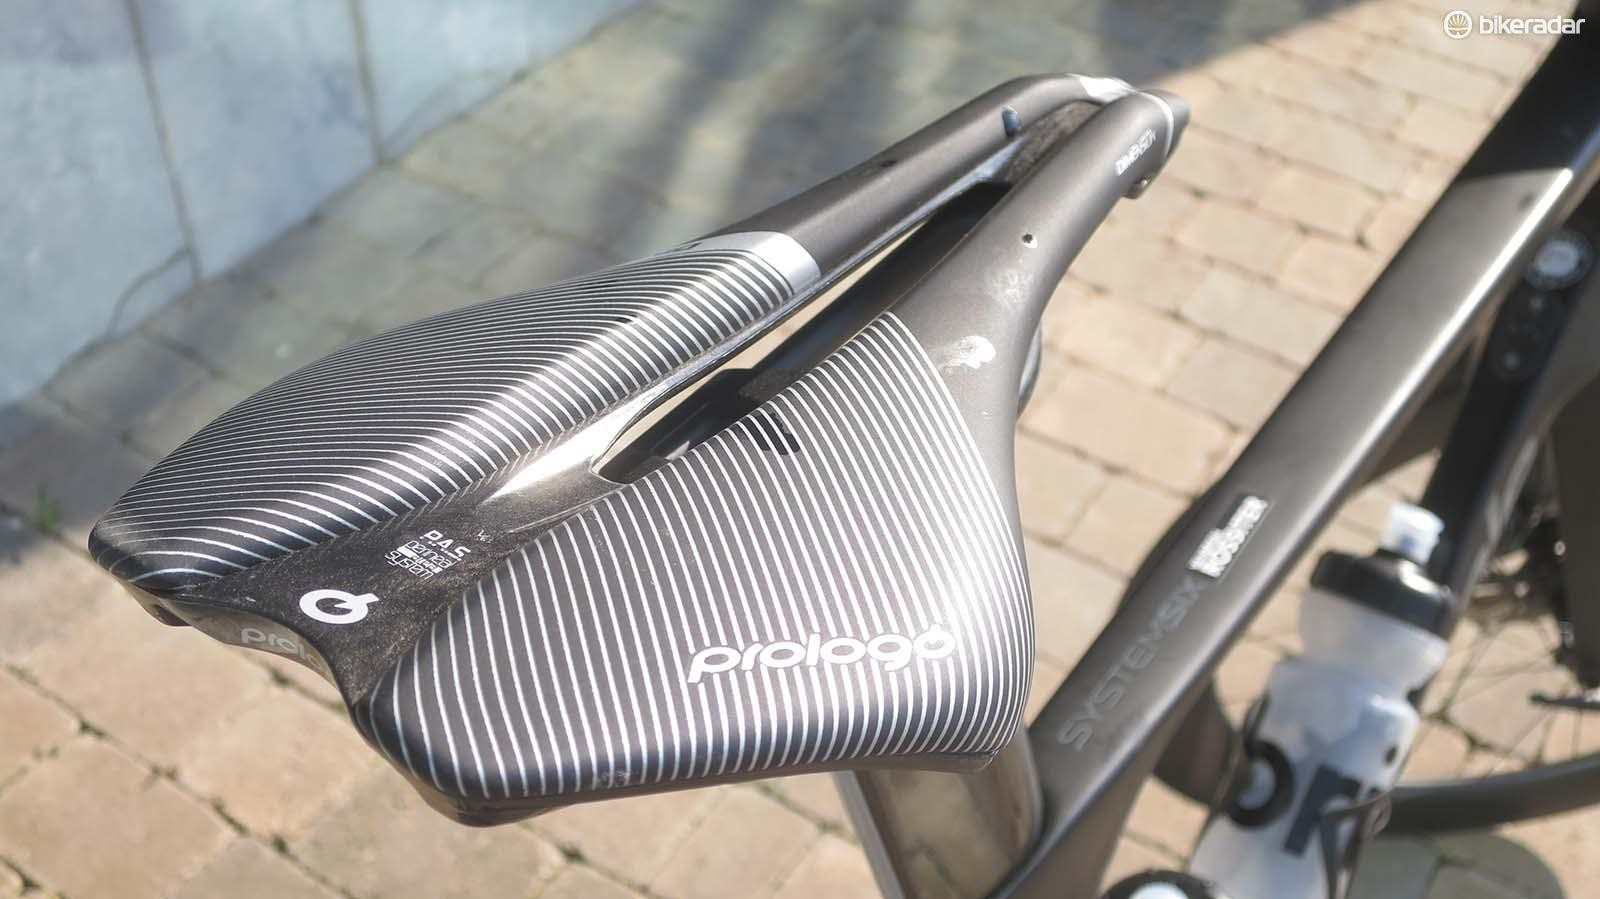 ProLogo's take on the shorty saddle is the Dimension and it comes fitted as standard on the SystemSix